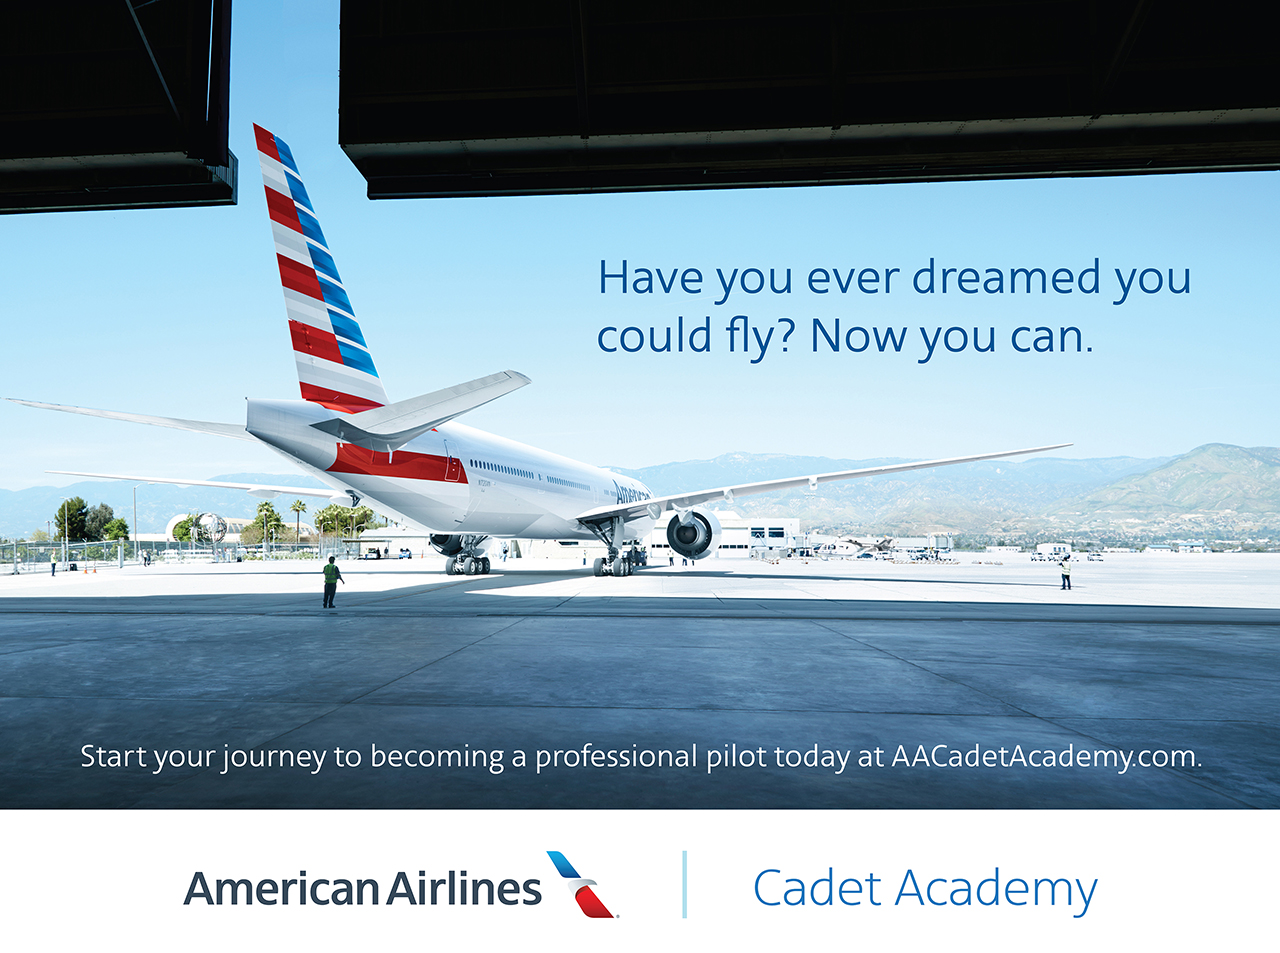 Fort Worth Focus >> Newsroom - American Airlines Announces New Program to Recruit Next Generation of Pilots With ...